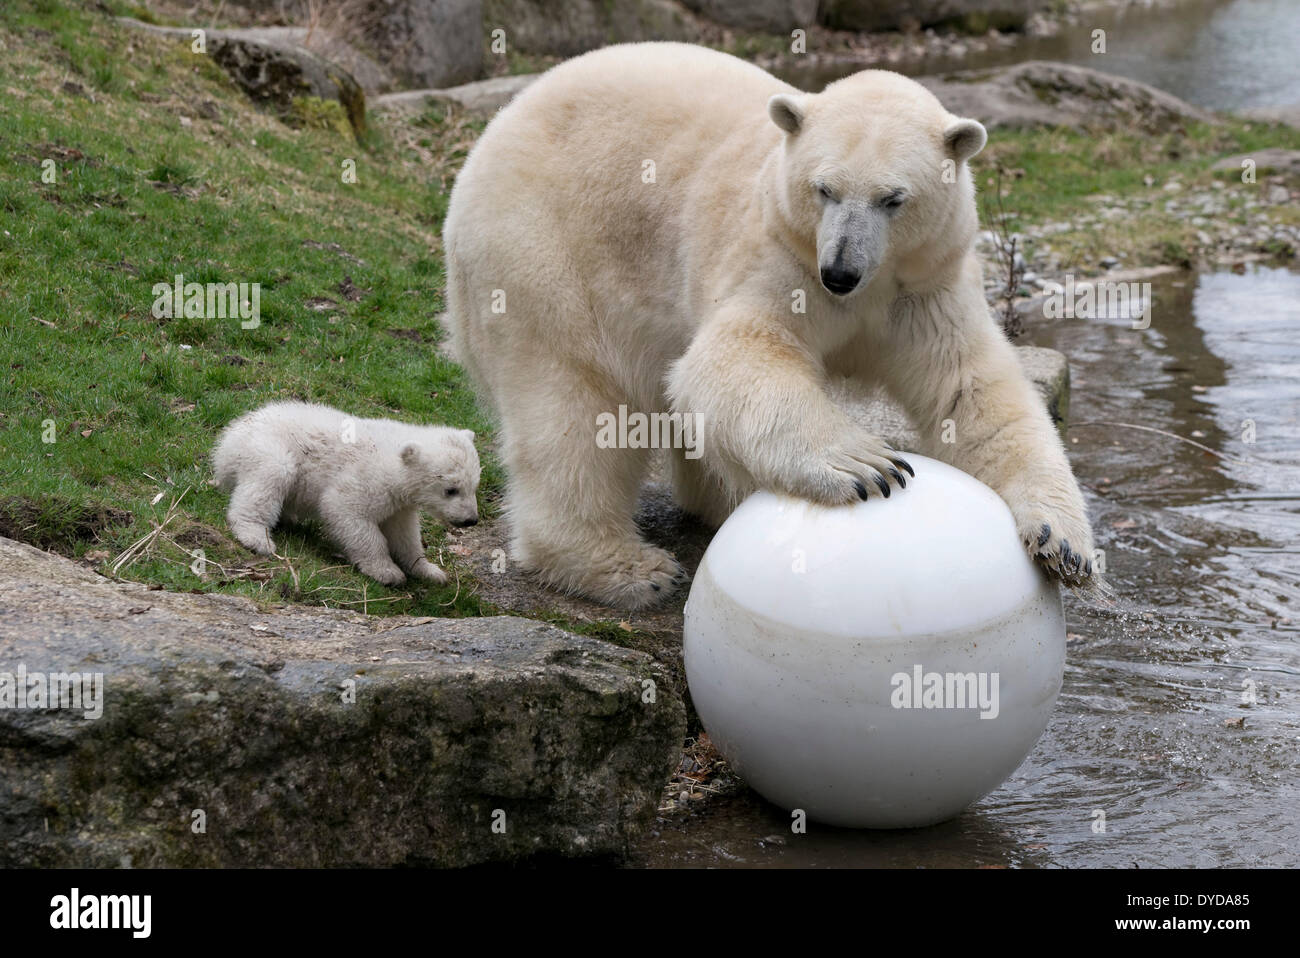 Polar Bears (Ursus maritimus), cub, Nobby, 14 weeks, playing with its mother, Giovanna, Hellabrunn Zoo, Munich, Upper Bavaria - Stock Image